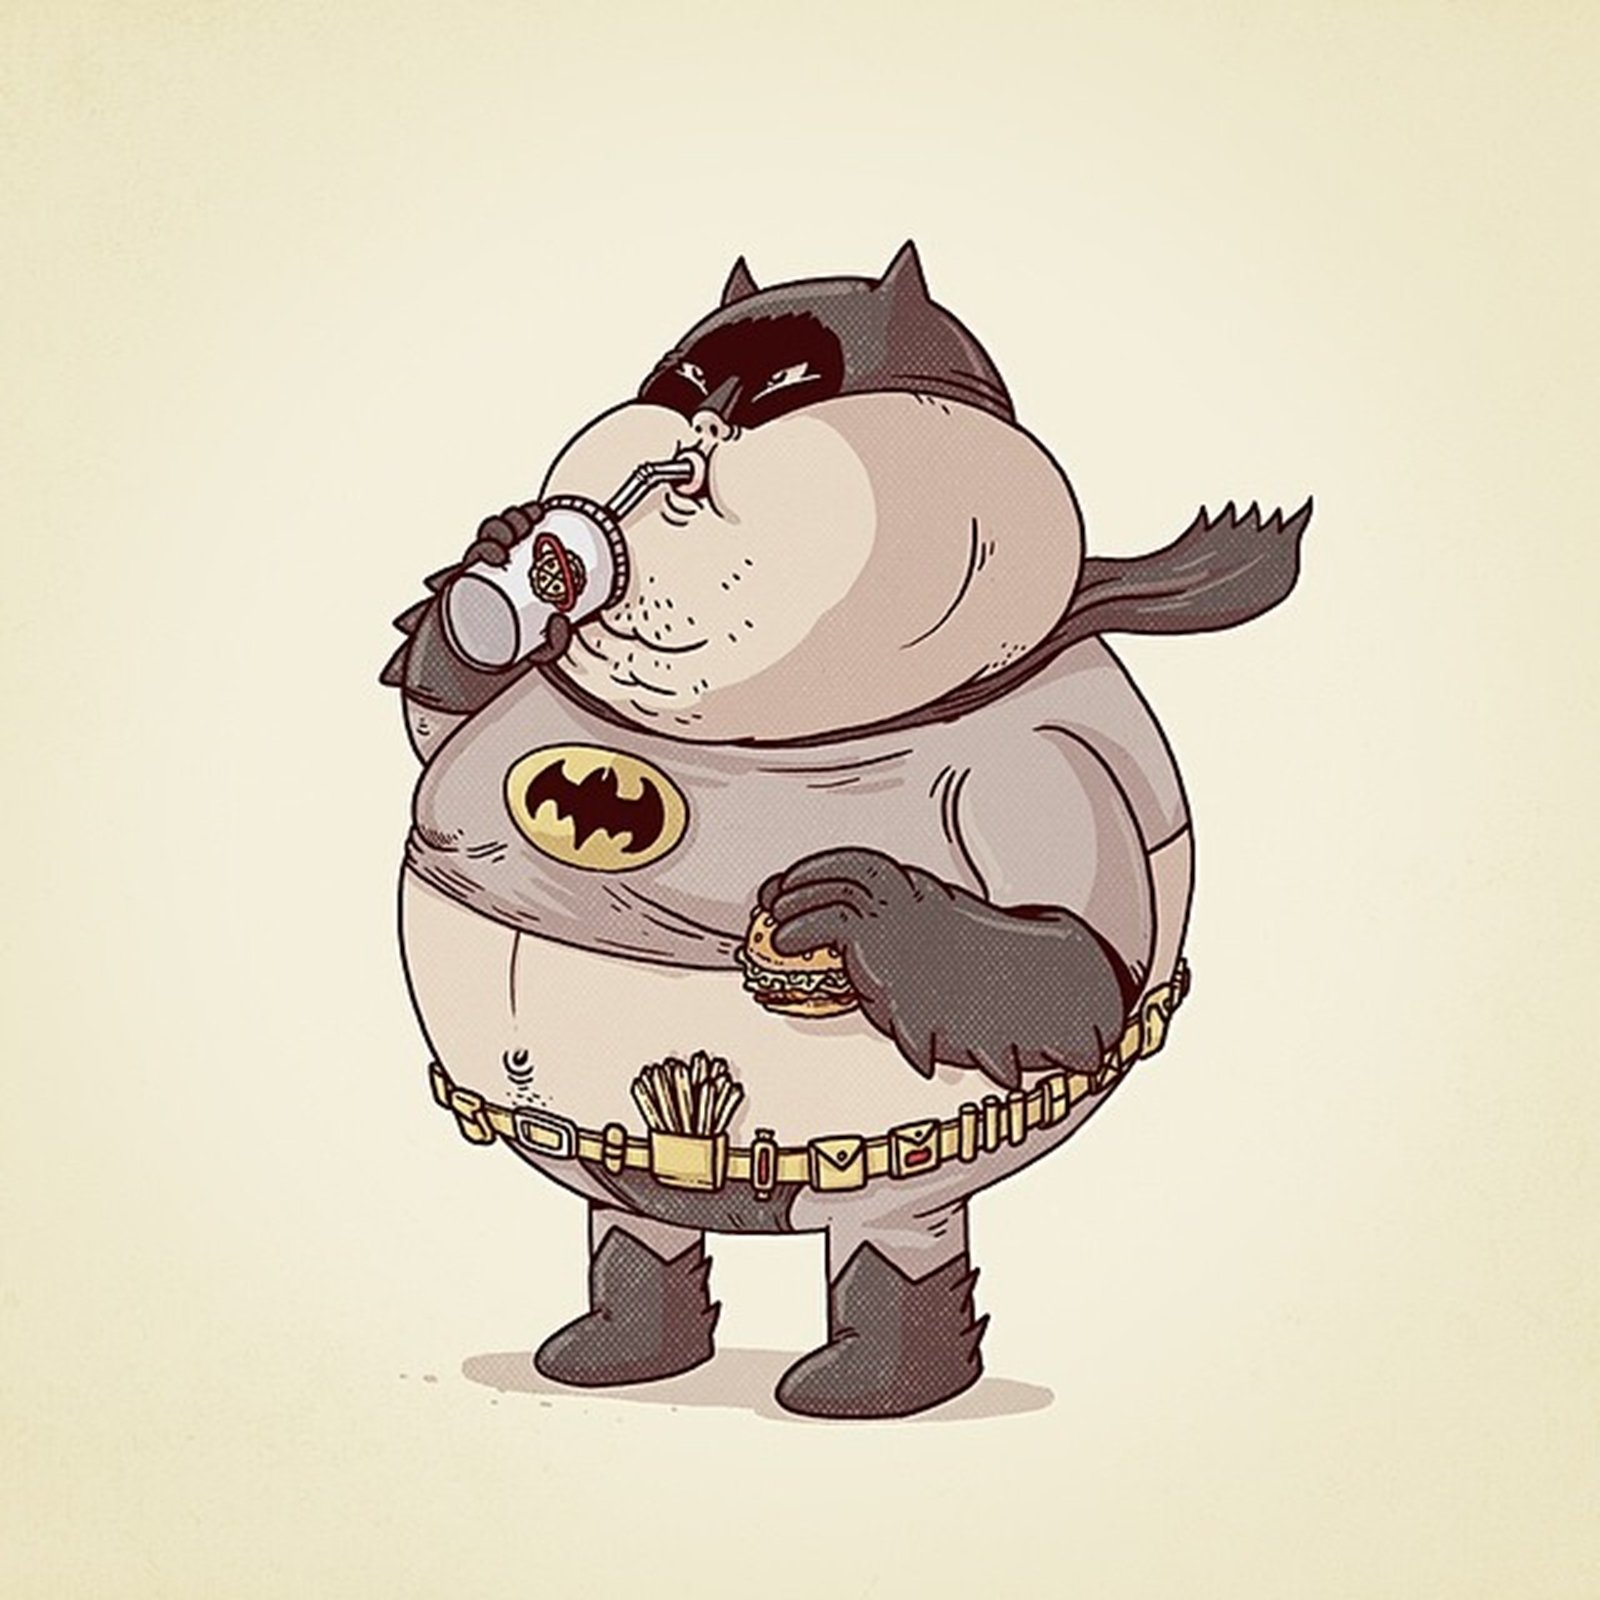 Batman Fat Superhero Dc-comics Comics Cartoon Wallpaper | 1600x1600 | 369006 | WallpaperUP